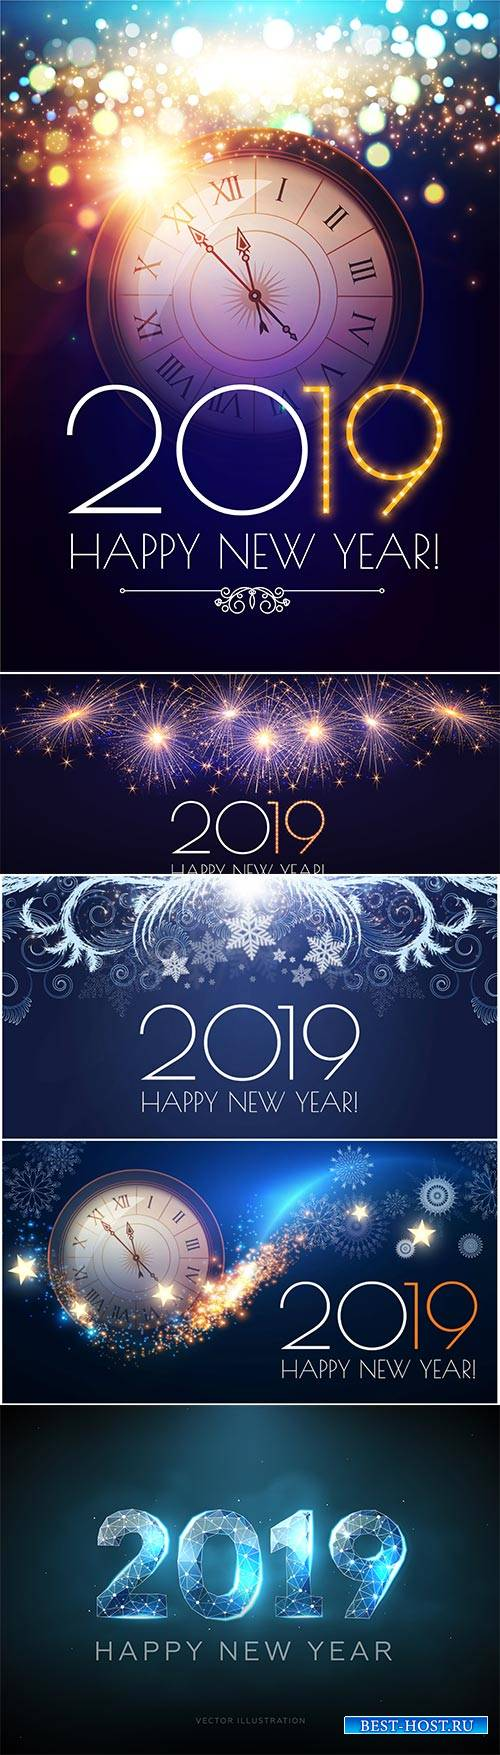 Happy New 2019 Year vector illustration, clock, fireworks